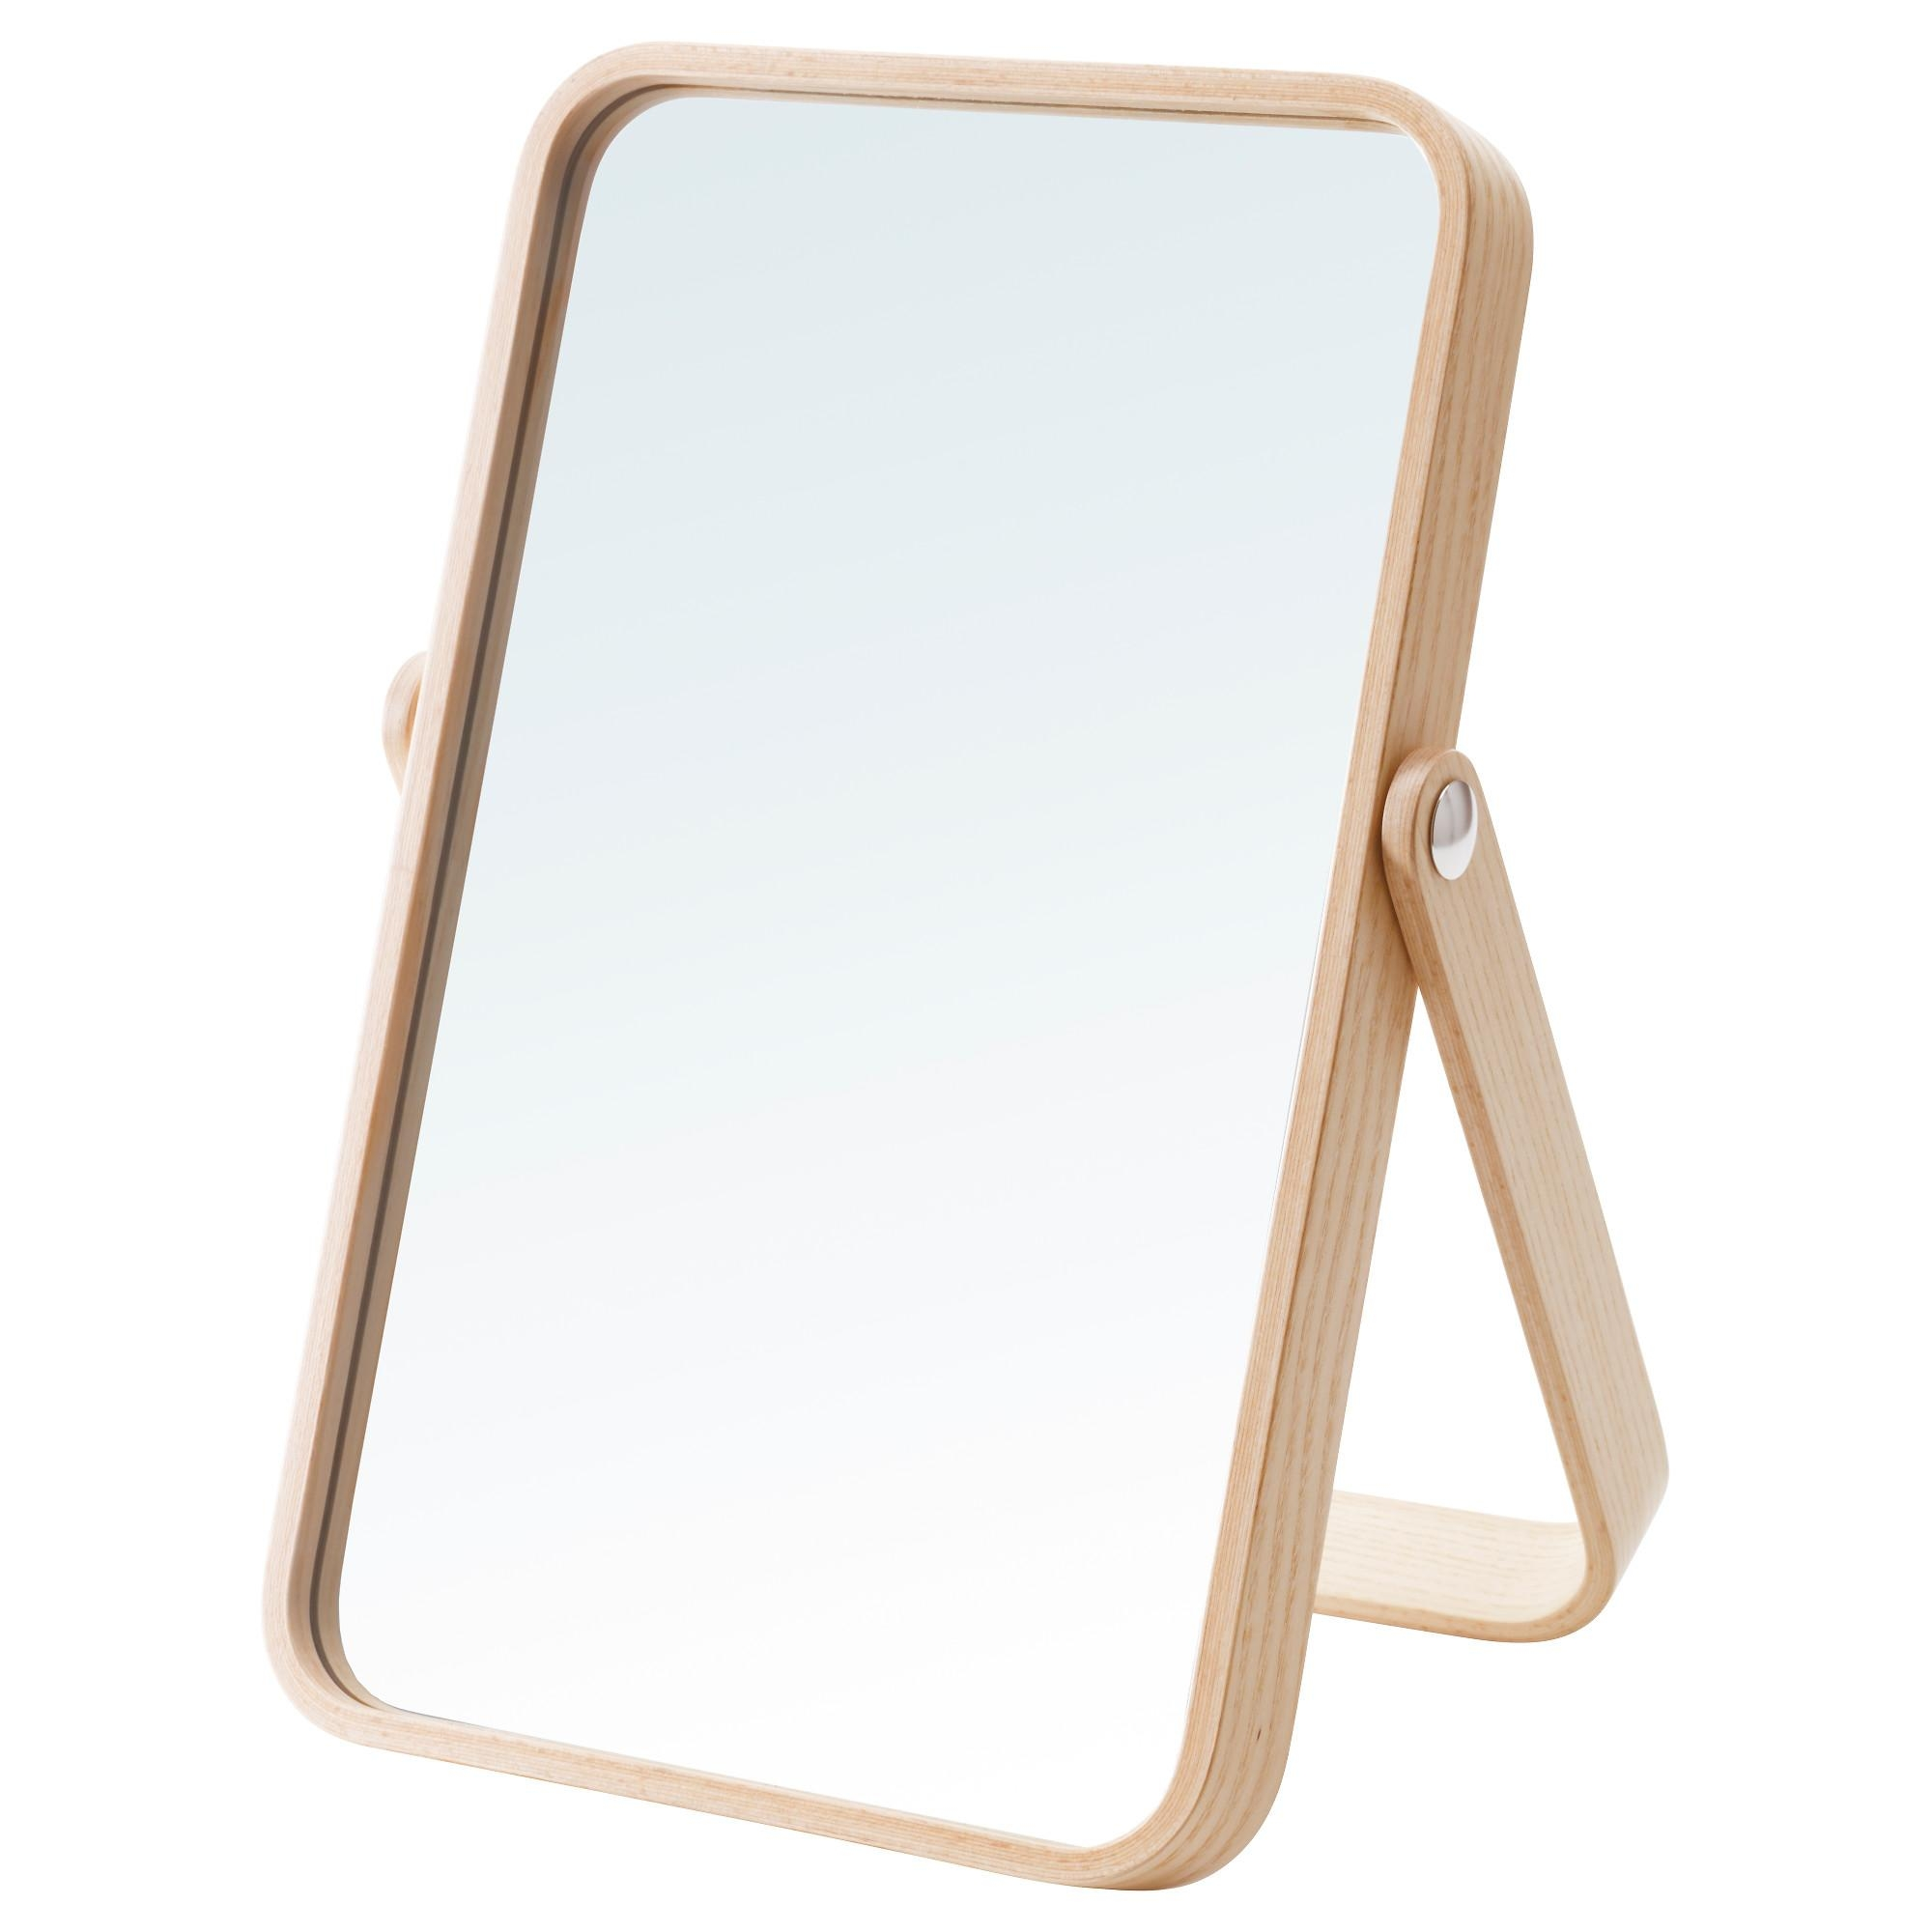 Ikornnes Table Mirror Ash 27X40 Cm – Ikea Regarding Small Free Standing Mirrors (Image 11 of 20)